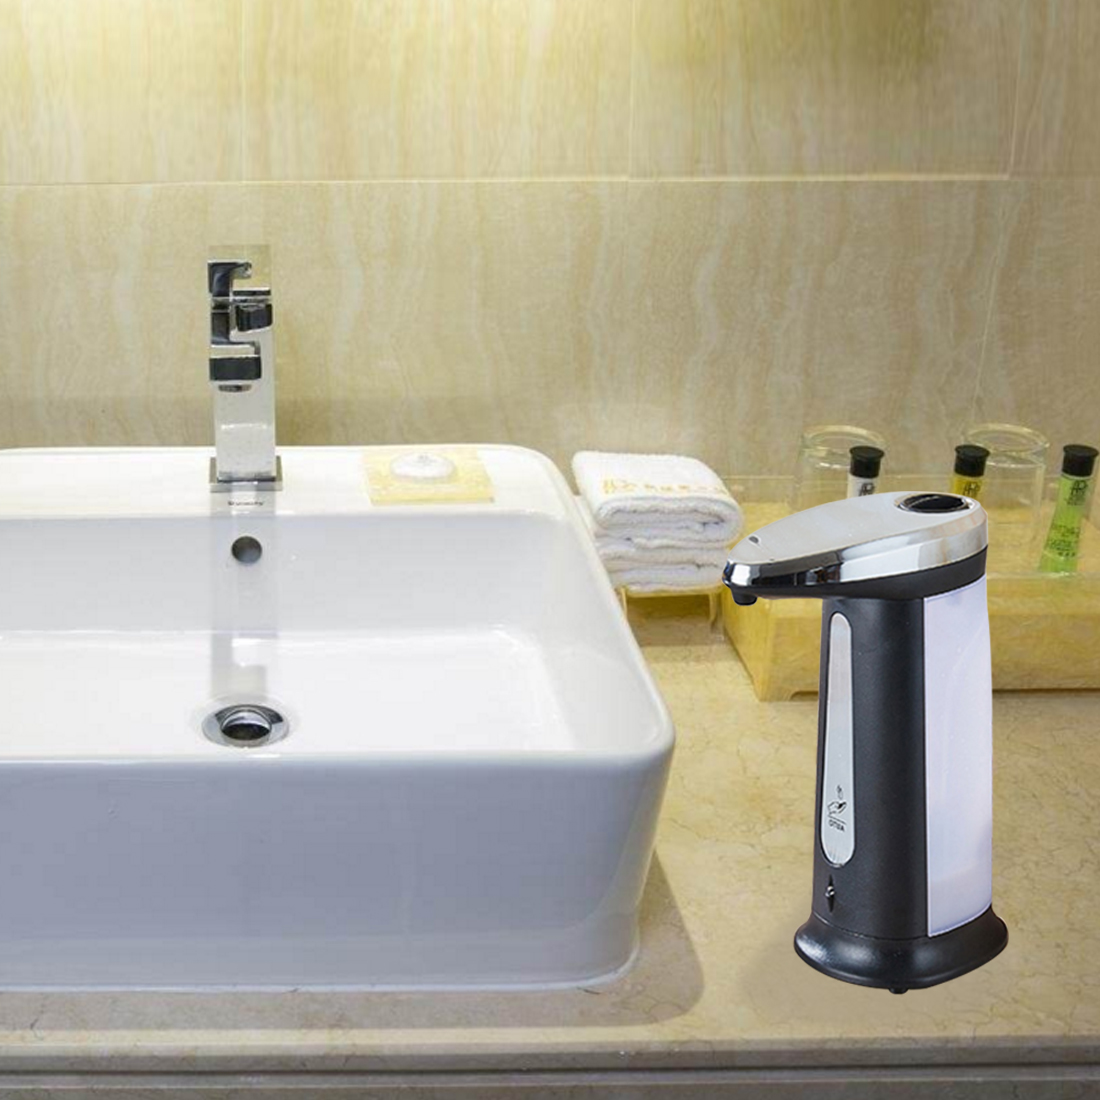 New Arrival 400Ml Electroplated Automatic Liquid Soap Dispenser Smart Sensor Touchless Sanitizer Dispensador Kitchen Bathroom